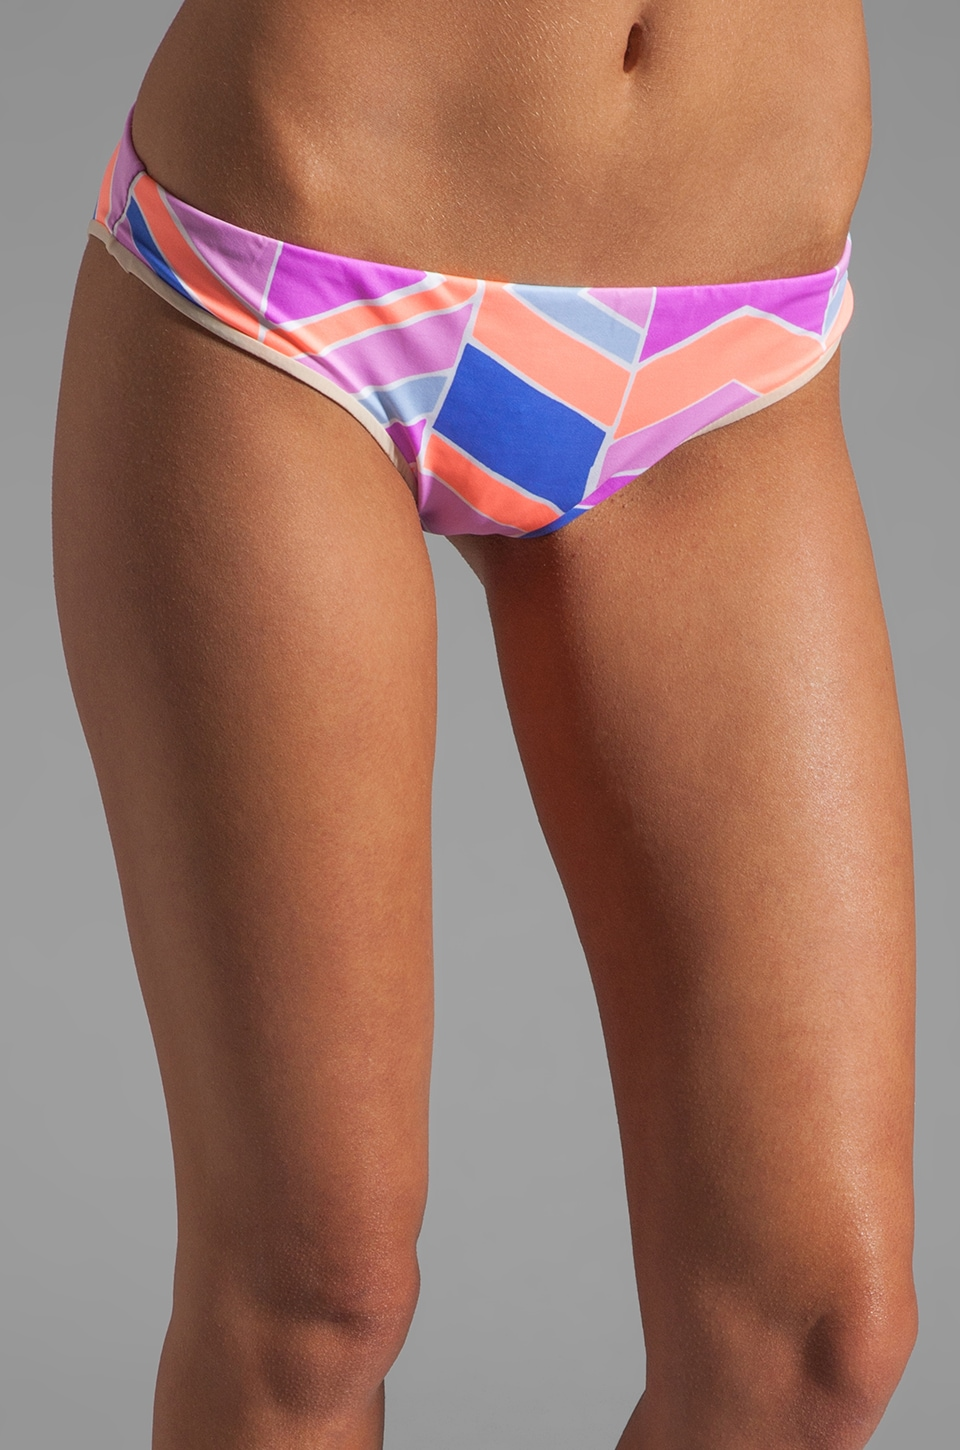 zinke Katie Bottoms in Orchid Chevron